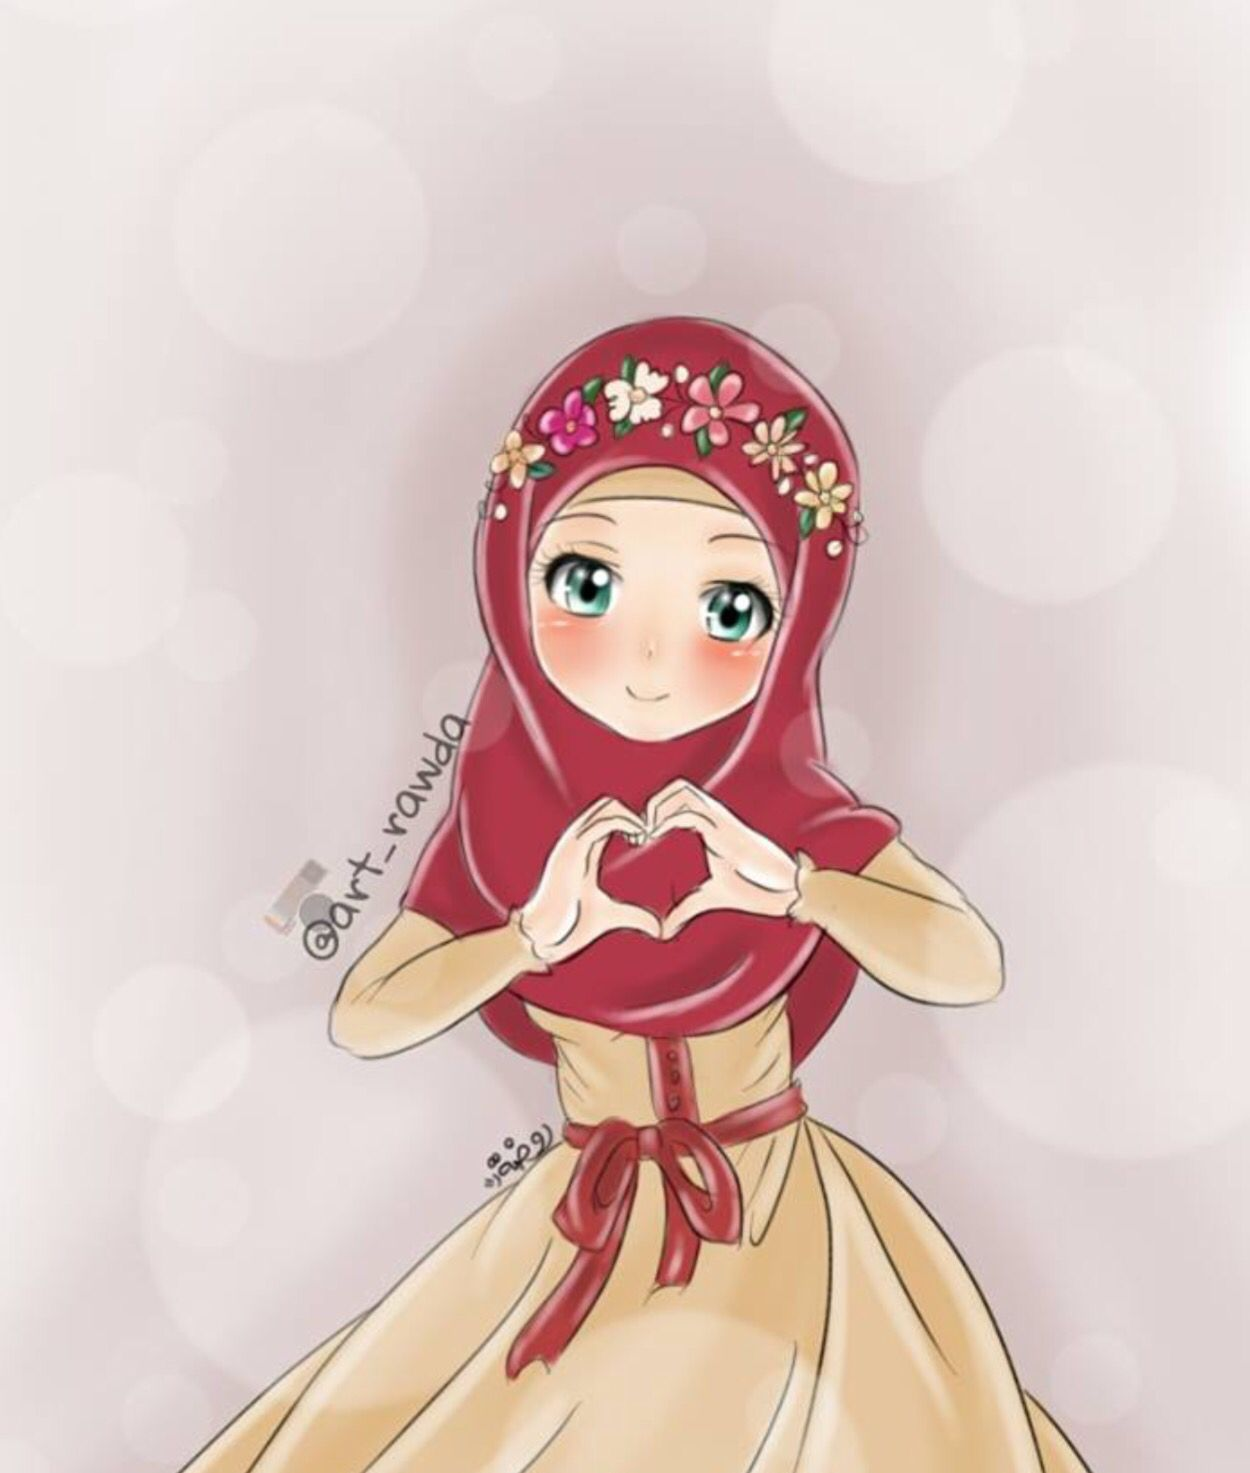 Hijab Anime Dessin Kawaii Hijab Anime Dessins De Fille